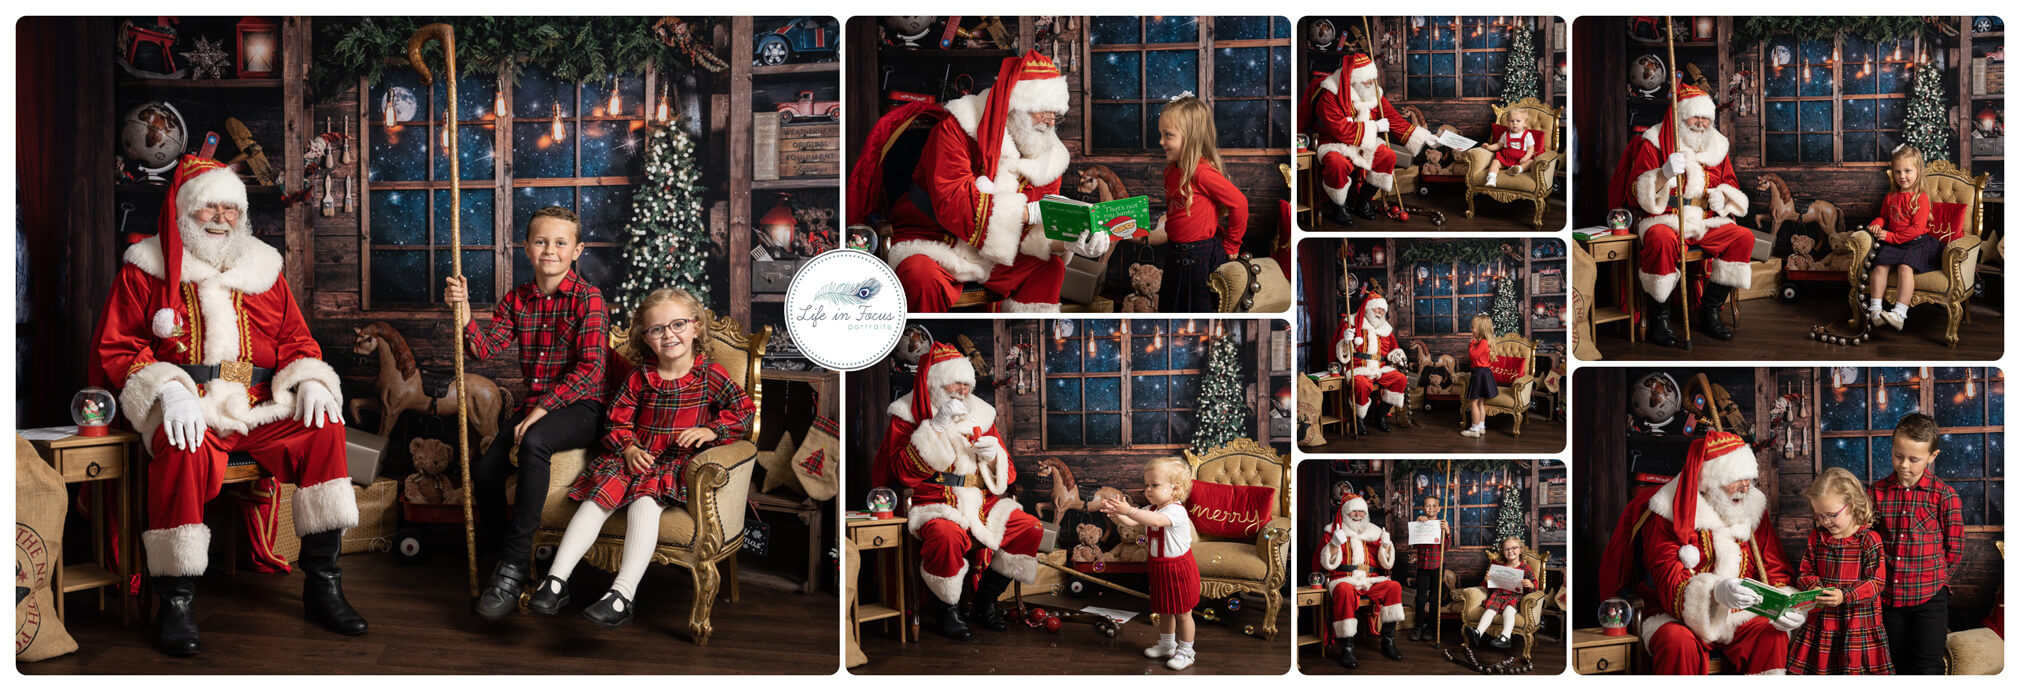 collage of photos of Santa with Children at Christmas photo sessions Life in Focus Portraits Helensburgh family photographer